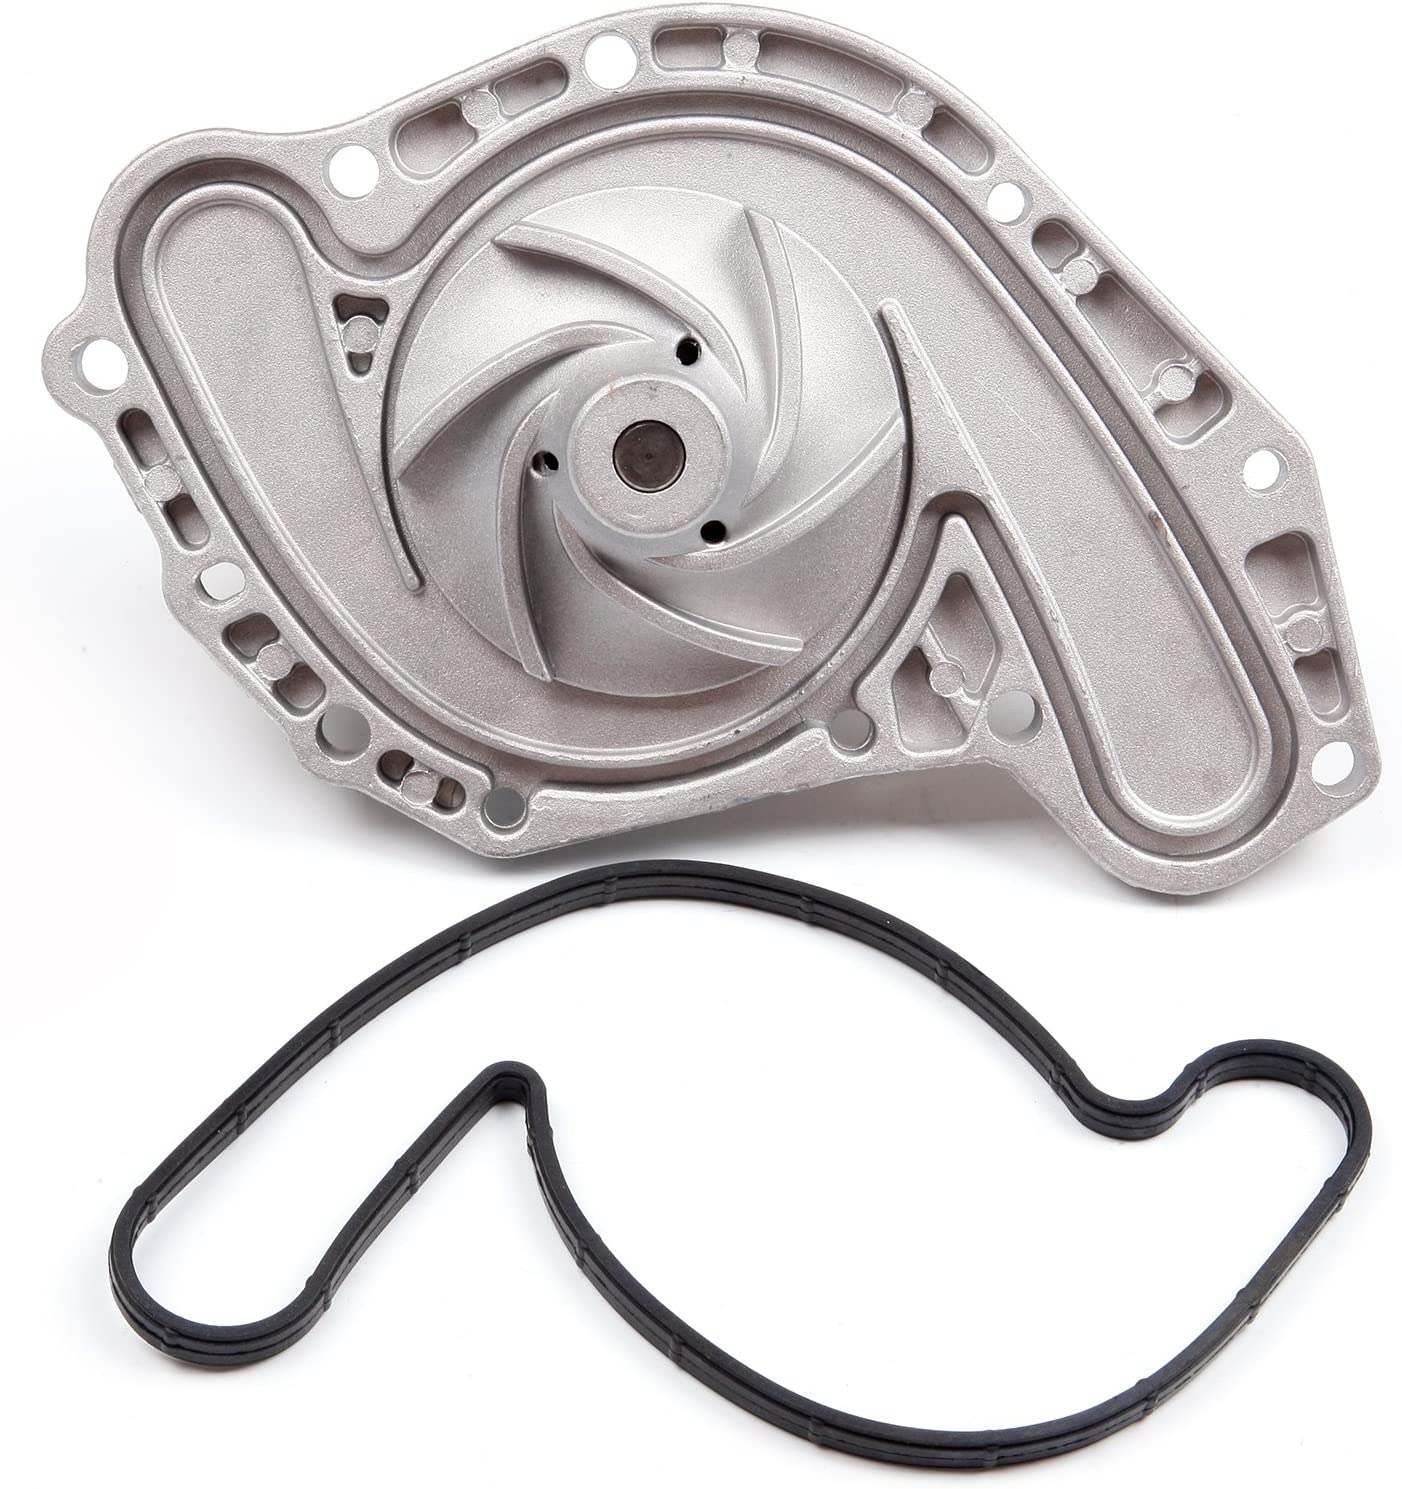 TUPARTS Timing Belt Kit with Water Pump Tensioner Bearing Replacement for 2005-2010 Chrysler 300